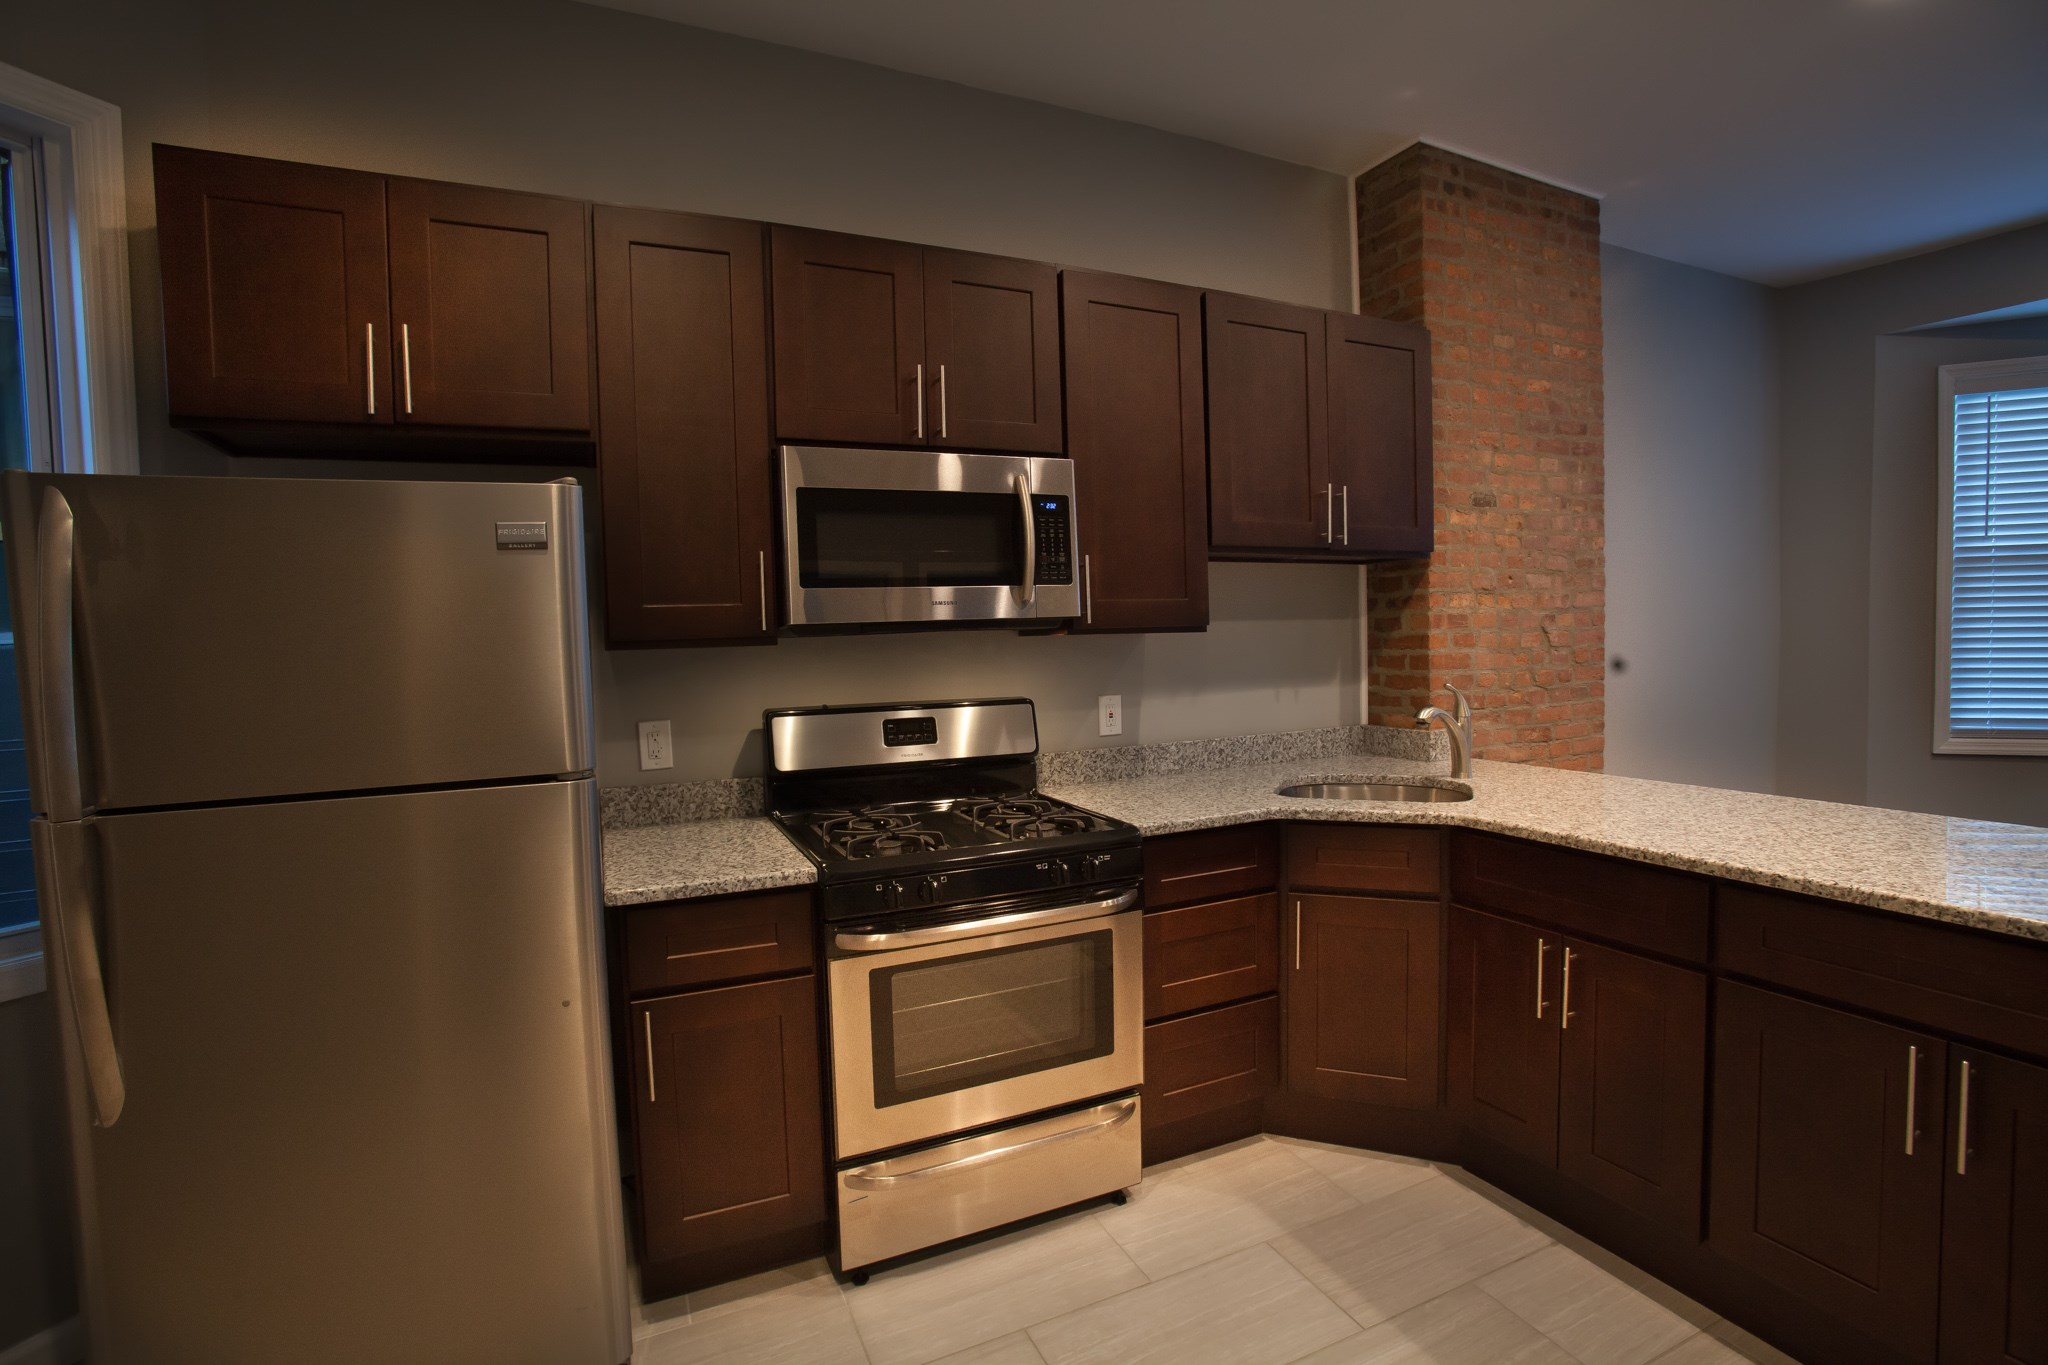 Buy a car find a house or apartment furniture appliances and more - New Luxury Apartment 5 Minutes To Journal Square